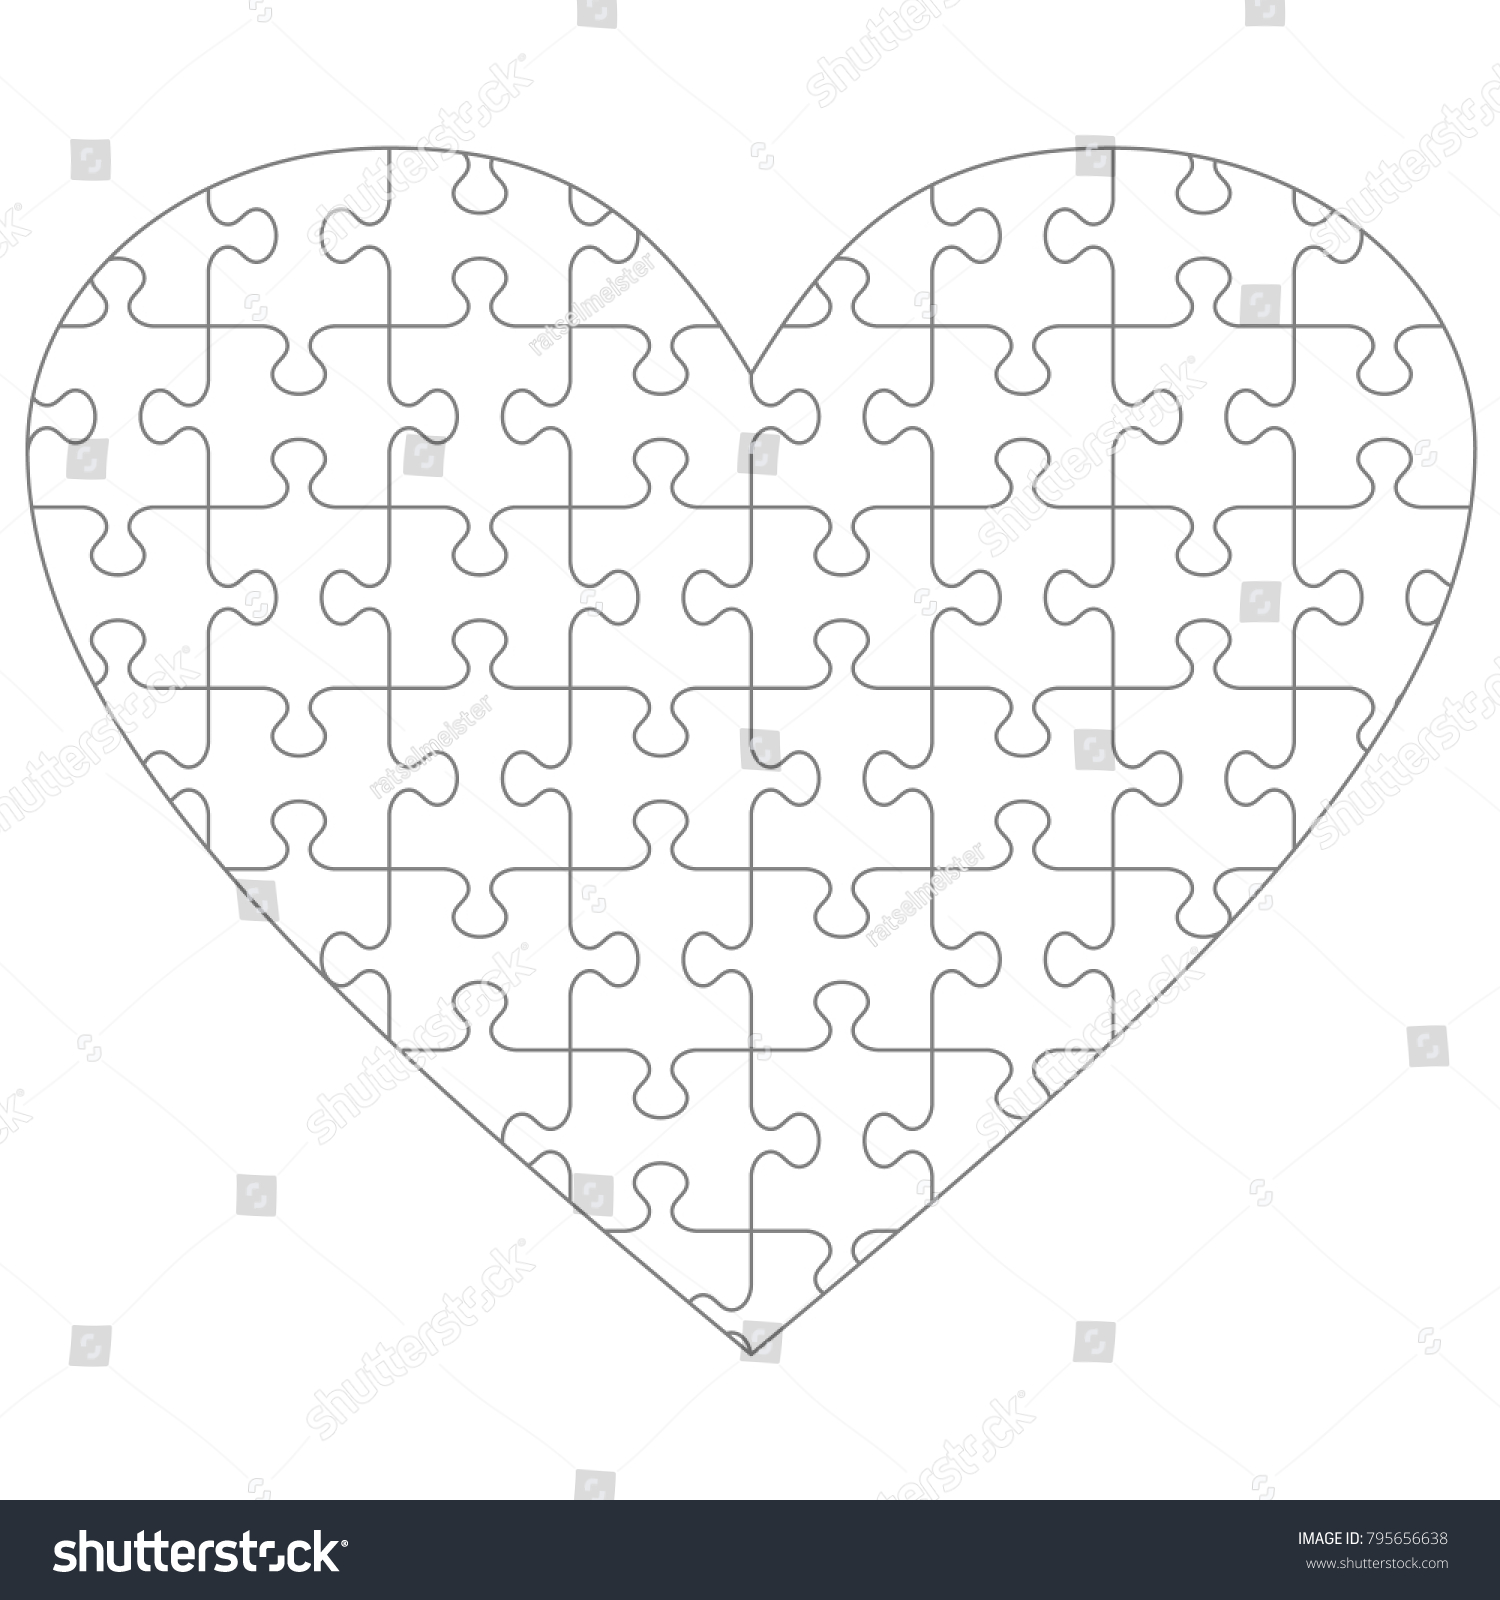 heart shaped jigsaw puzzle blank template stock illustration